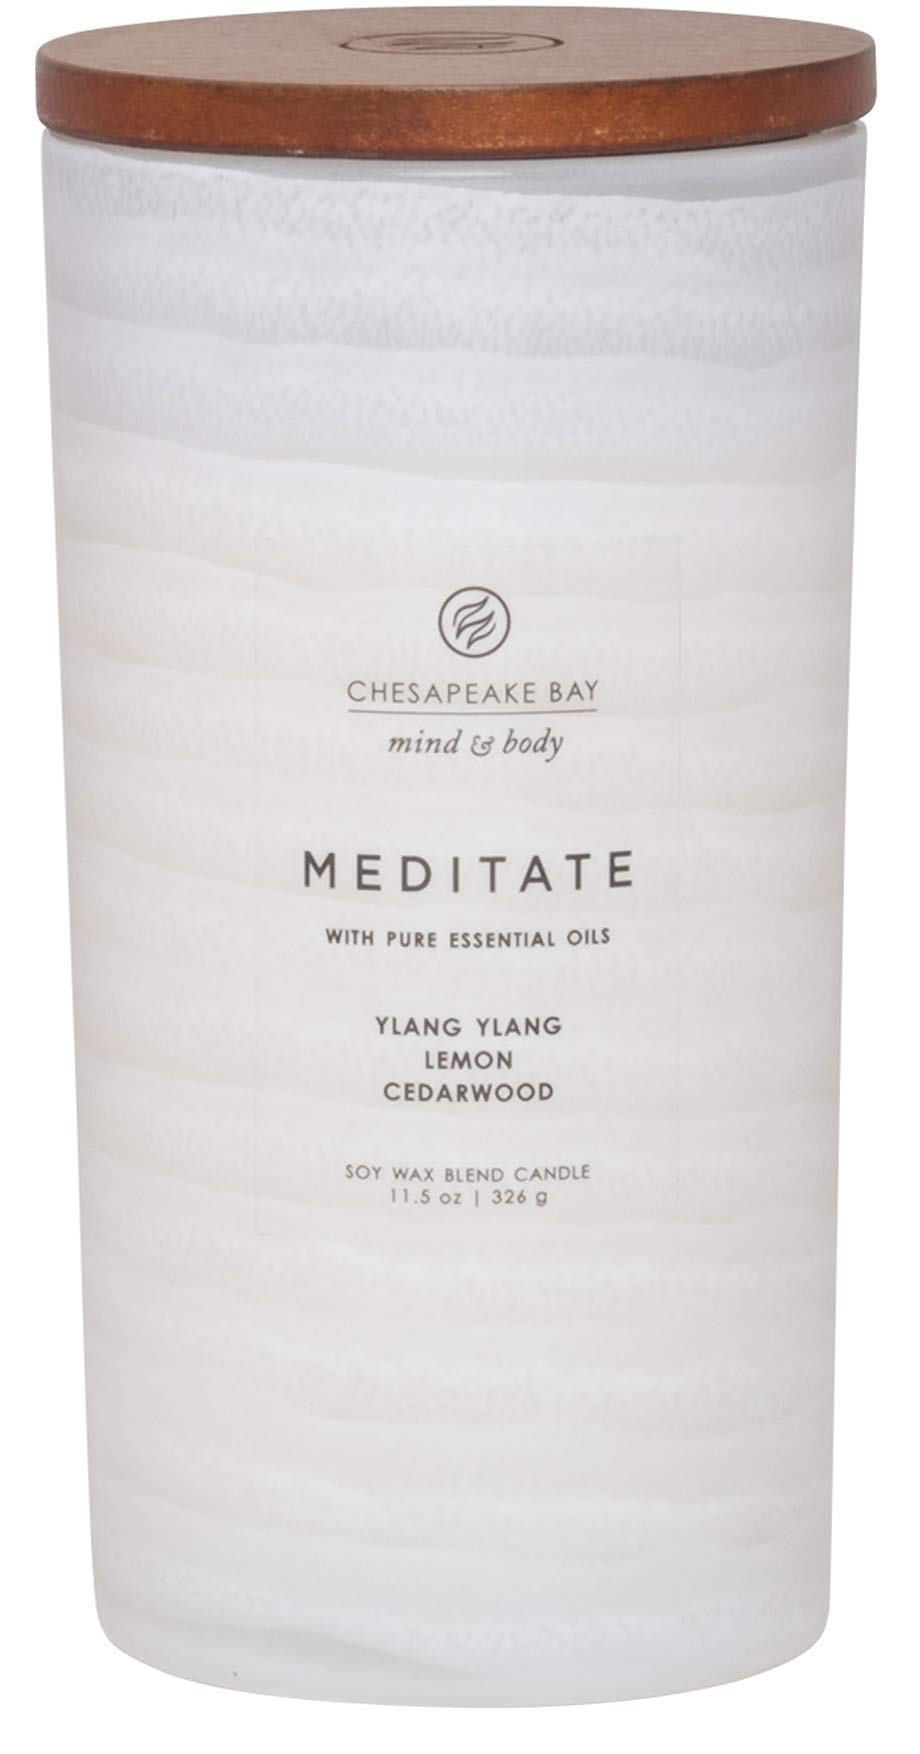 Chesapeake Bay Candle Mind & Body Serenity Scented Candle, Meditate with Pure Essential Oils (Ylang Ylang, Lemon, Cedarwood), Large